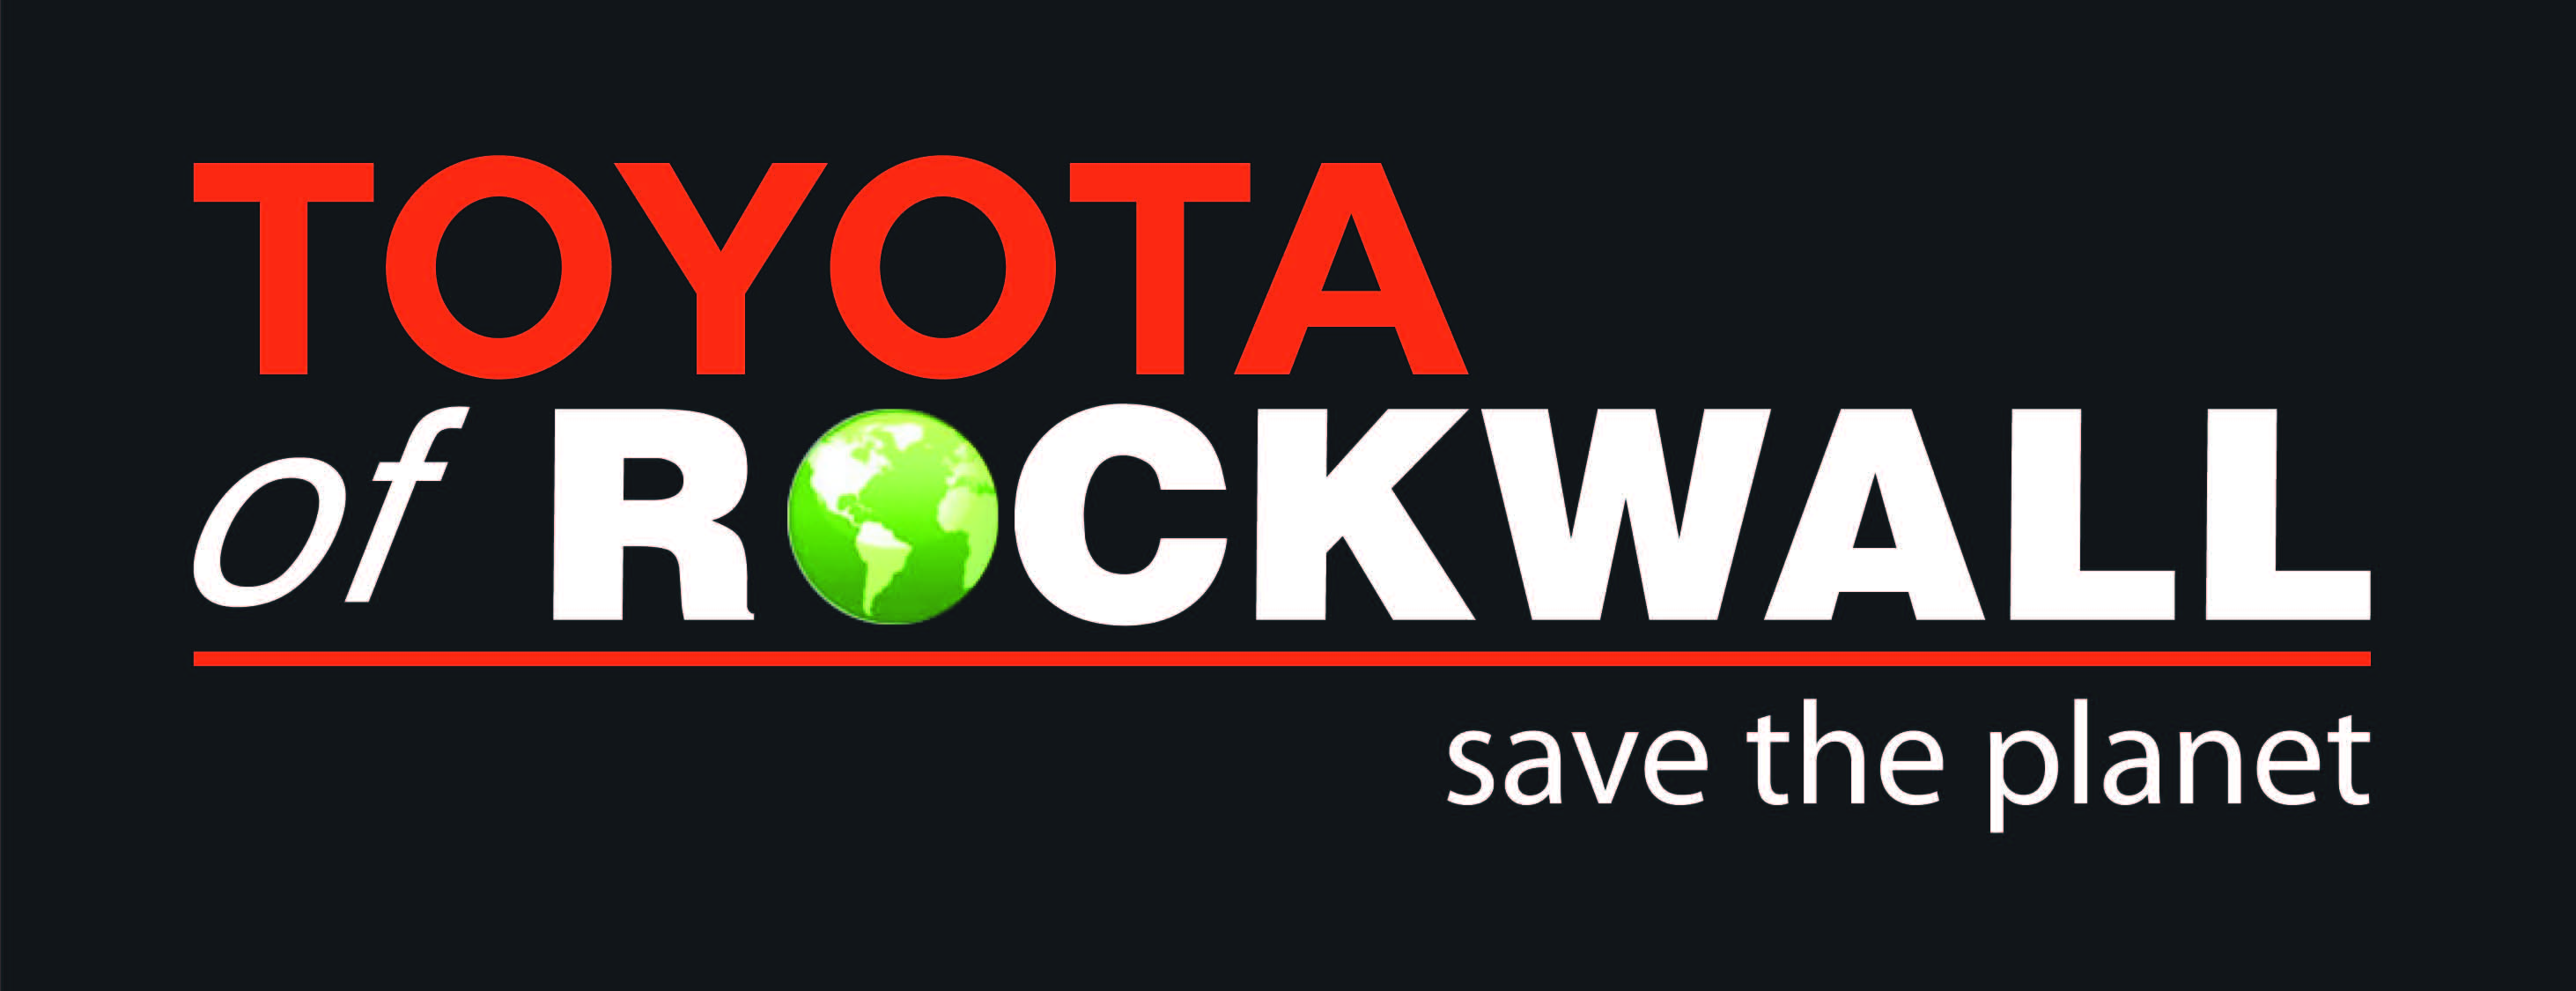 Toyota Of Rockwall >> Toyota Of Rockwall Toyota Motor Sales Reach 100 000 In Matching